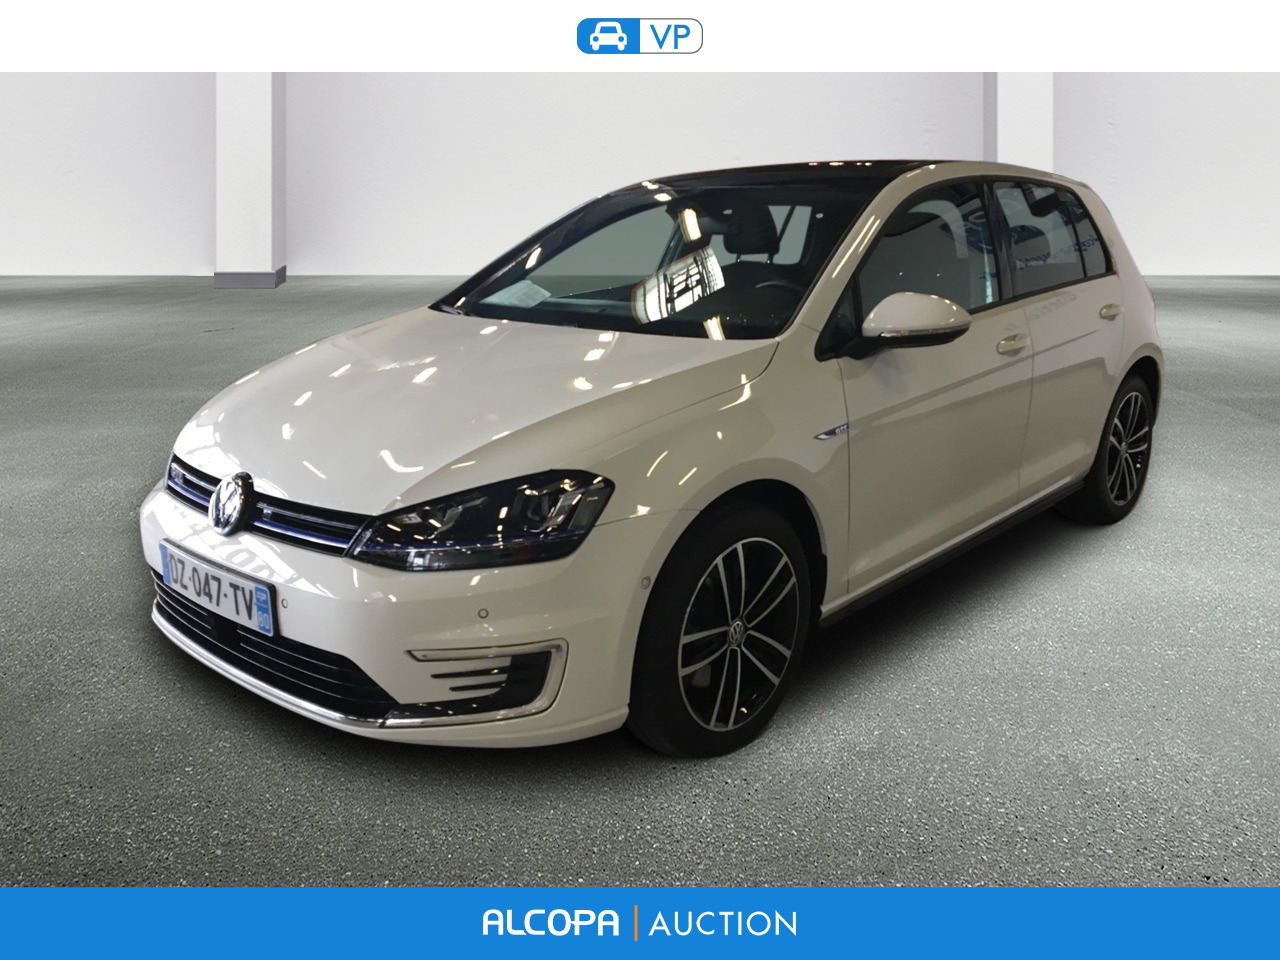 volkswagen golf 09 2012 02 2017 golf 1 4 tsi 204 hybride rechargeable dsg6 gte alcopa auction. Black Bedroom Furniture Sets. Home Design Ideas